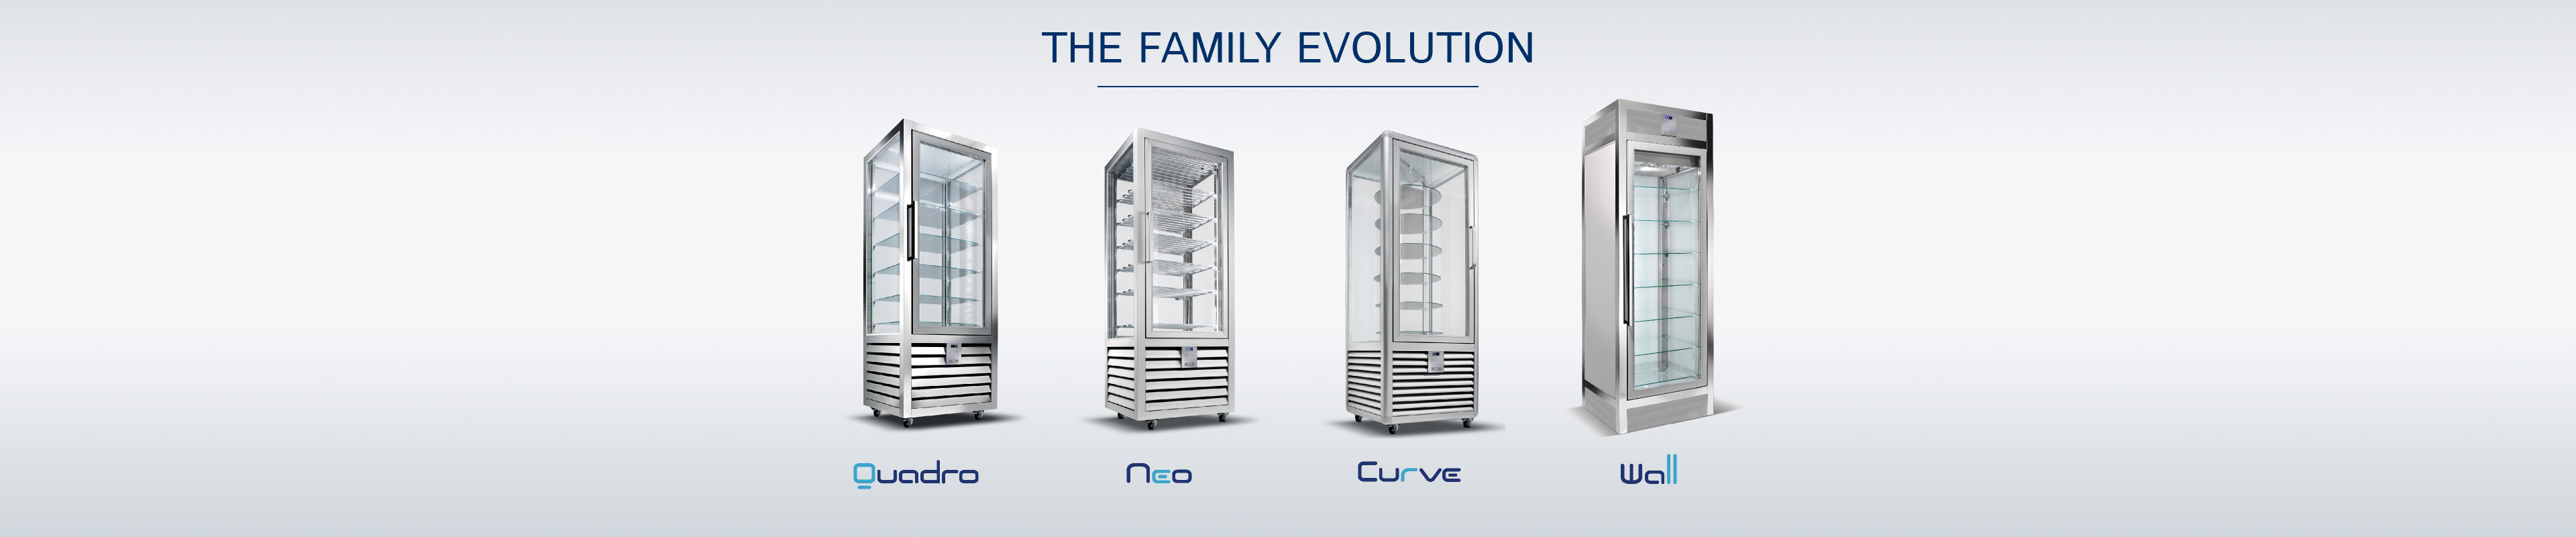 2-silfer-cooling-family-revolution